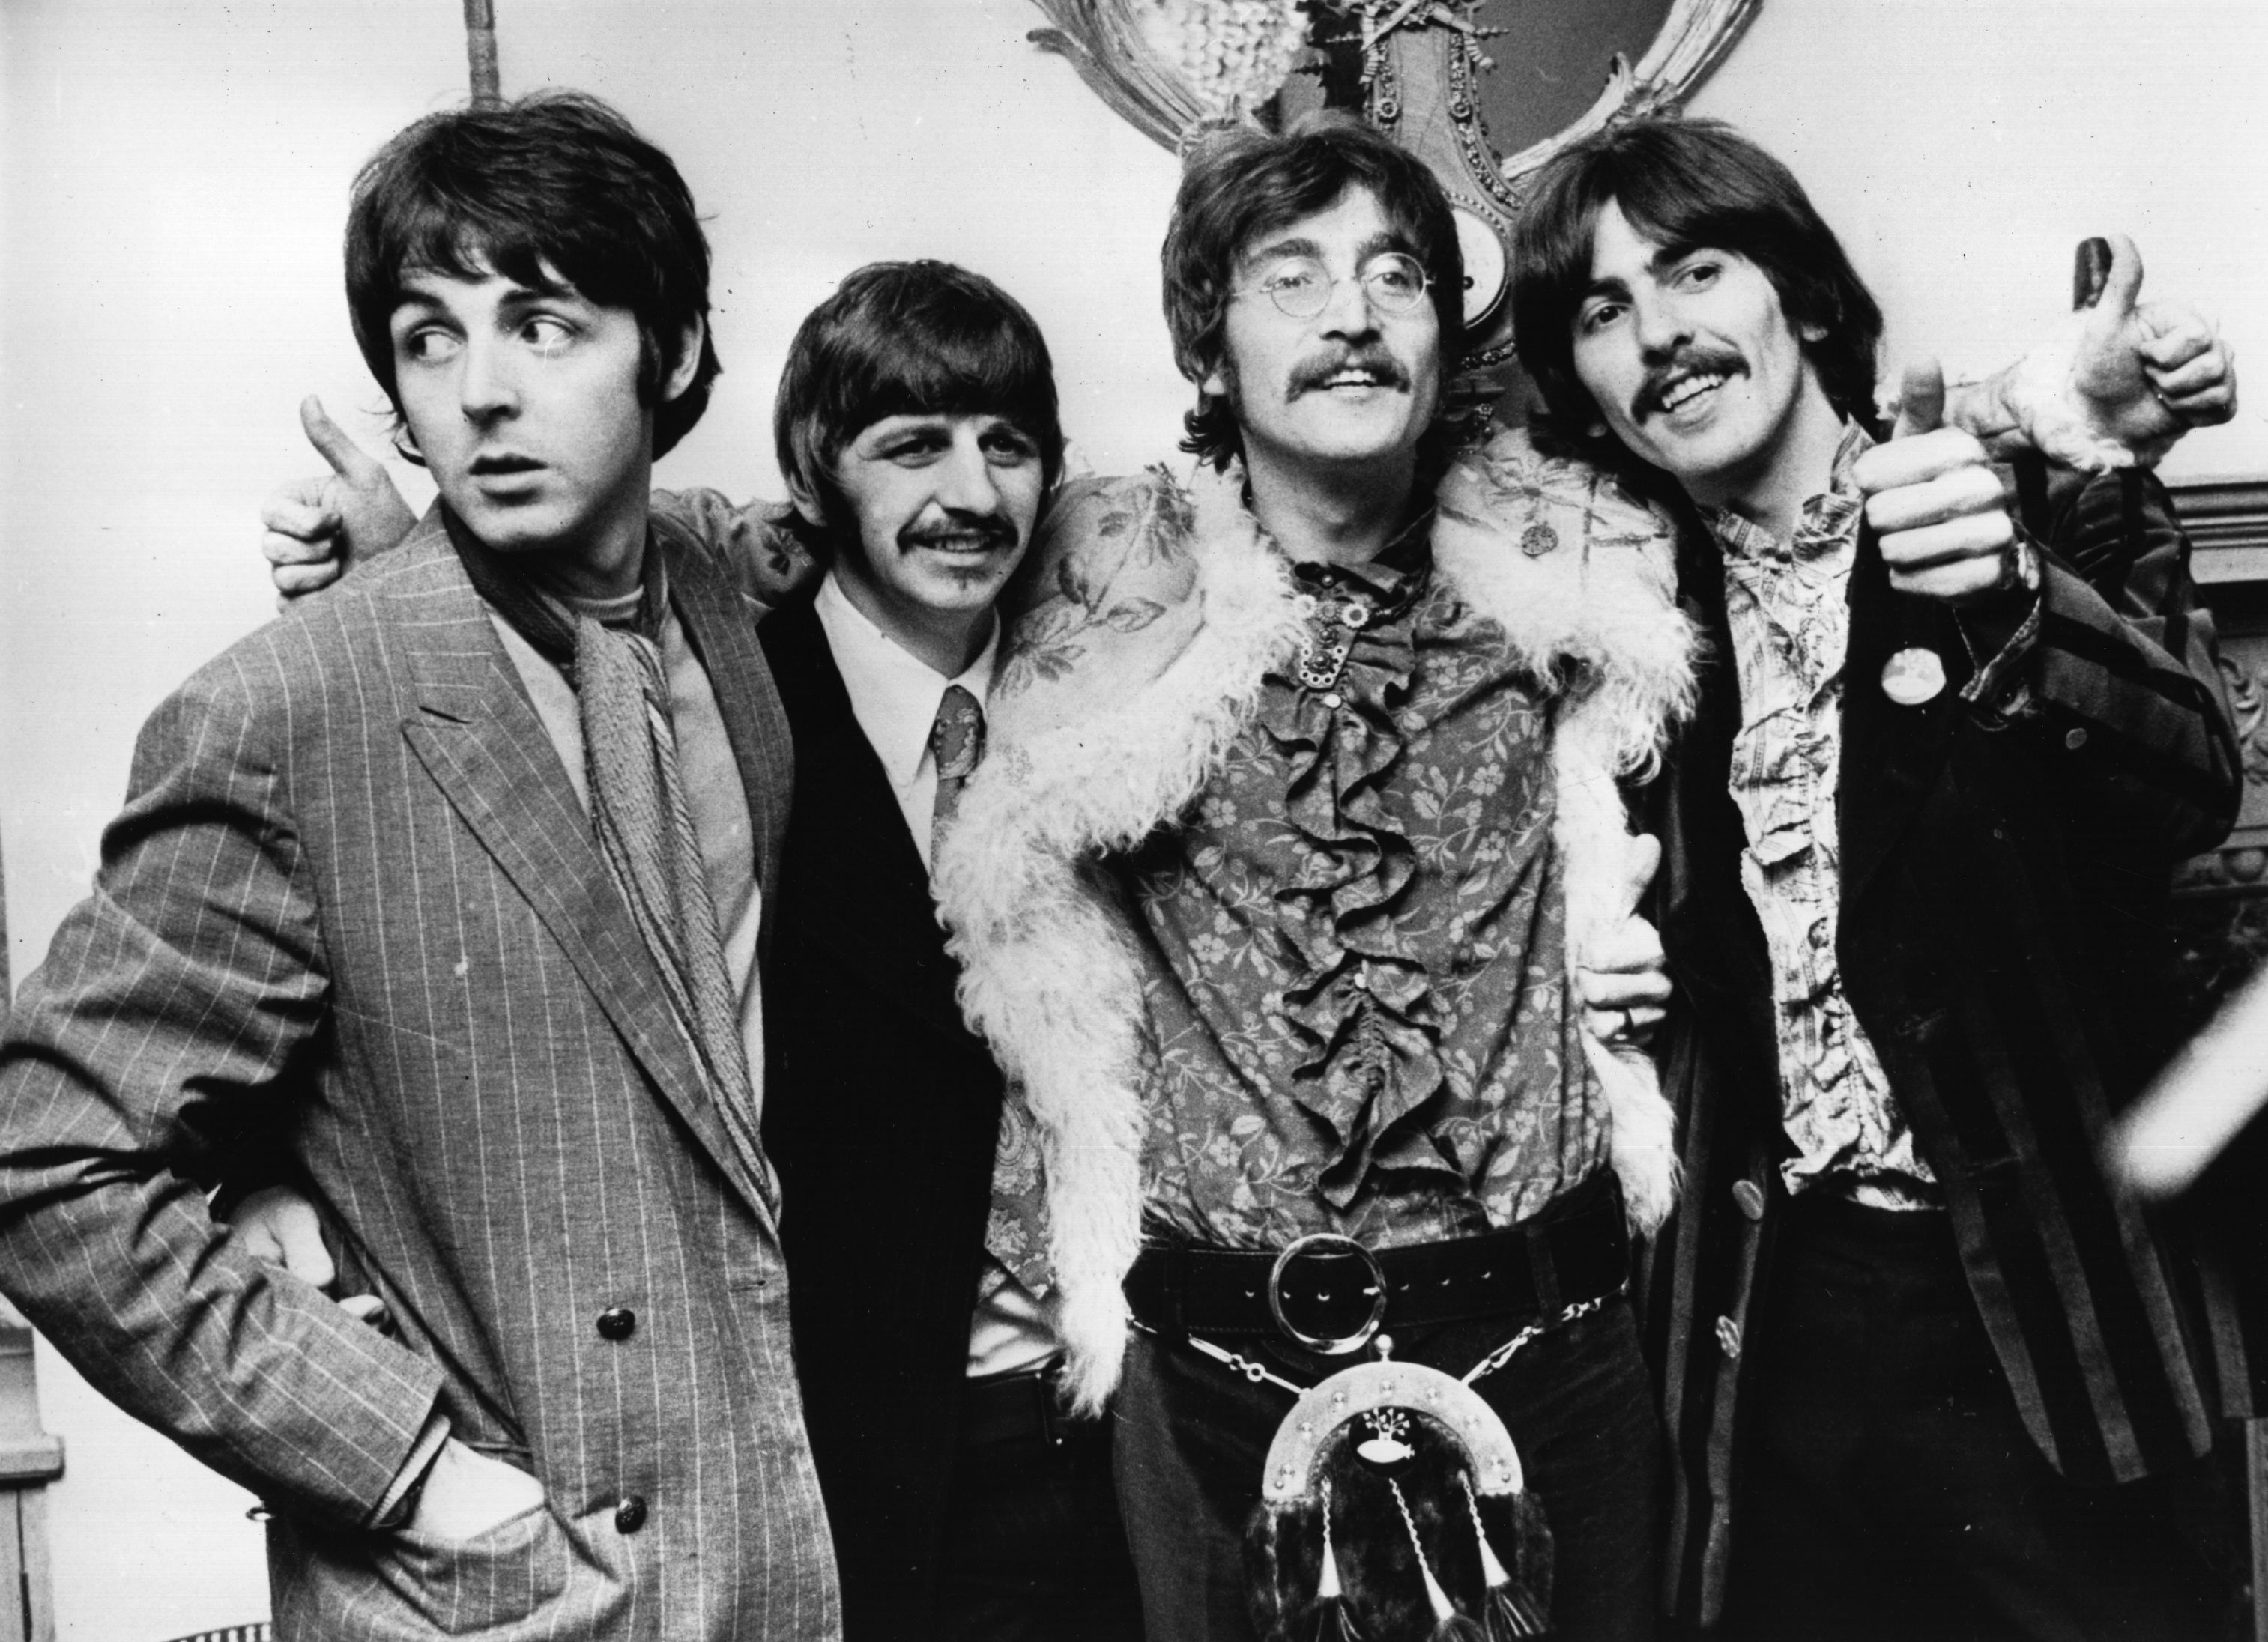 The Beatles' 'All You Need Is Love': A Minute-by-Minute Breakdown